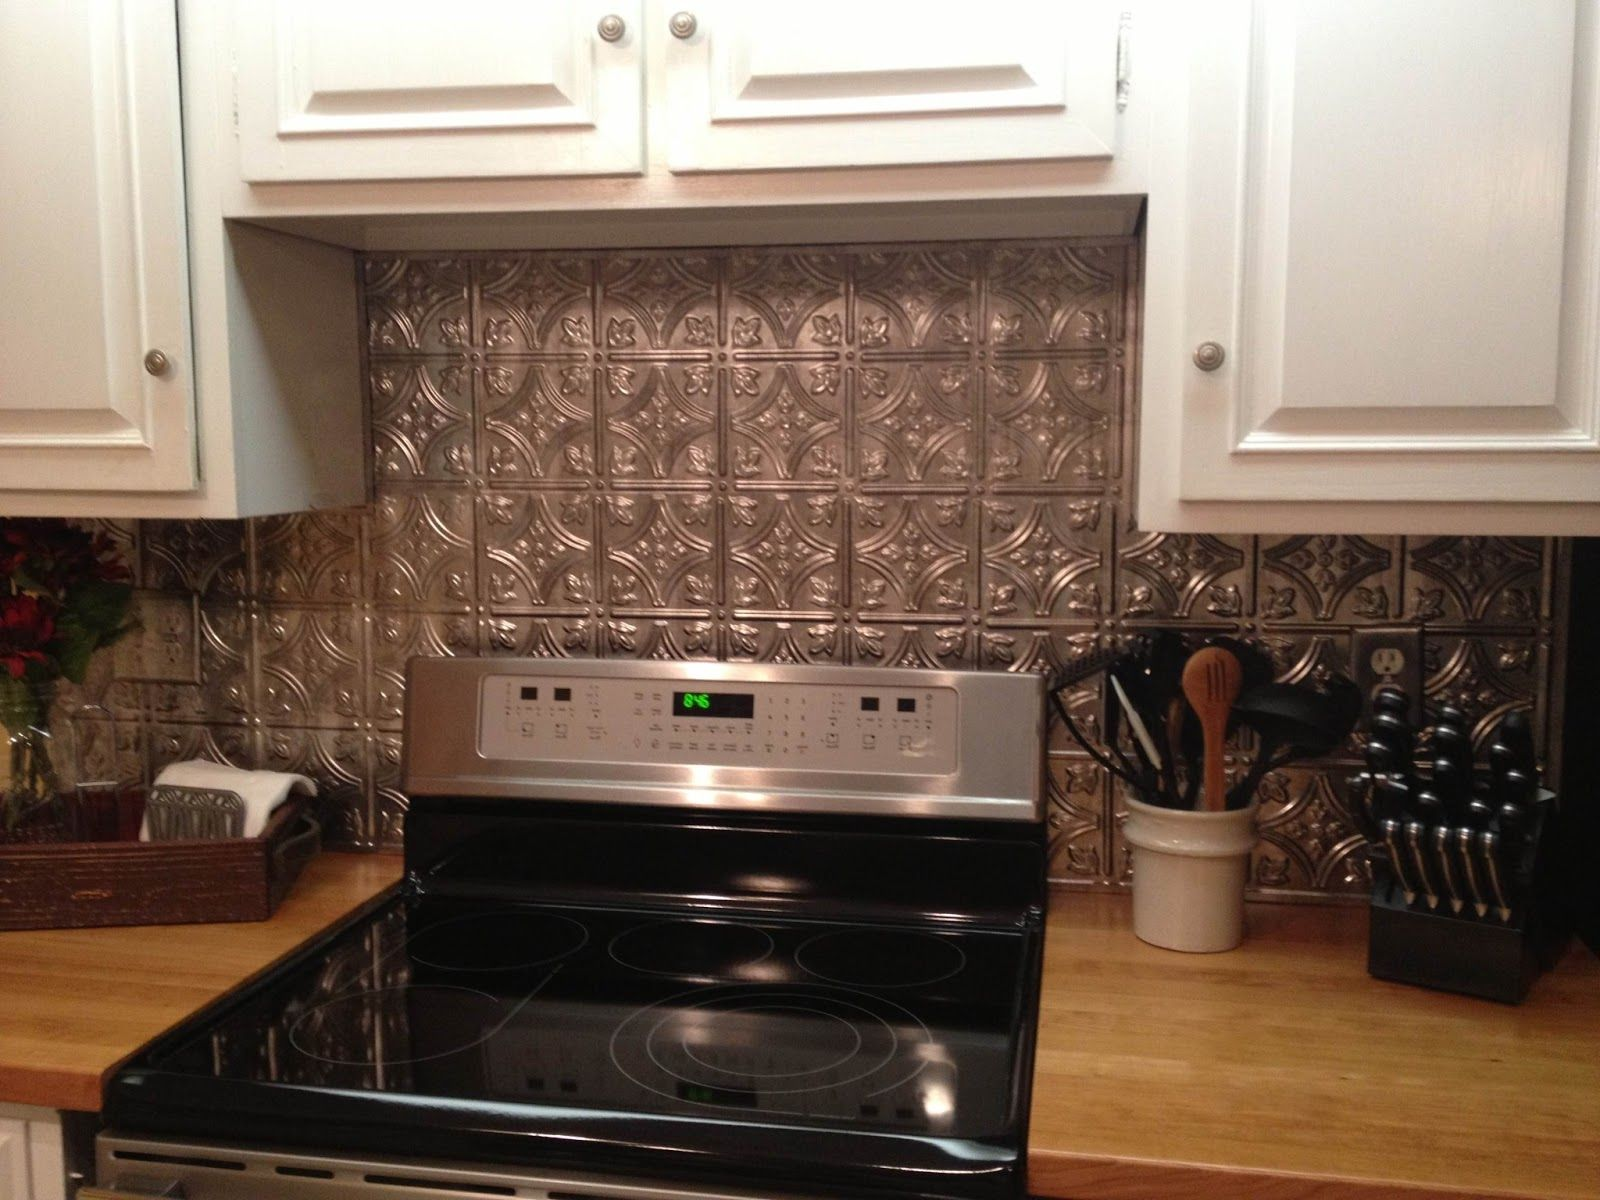 cool diy faux tin kitchen backsplash with vase top 12 faux tin cool diy faux tin kitchen backsplash with vase top 12 faux tin kitchen backsplash ideas